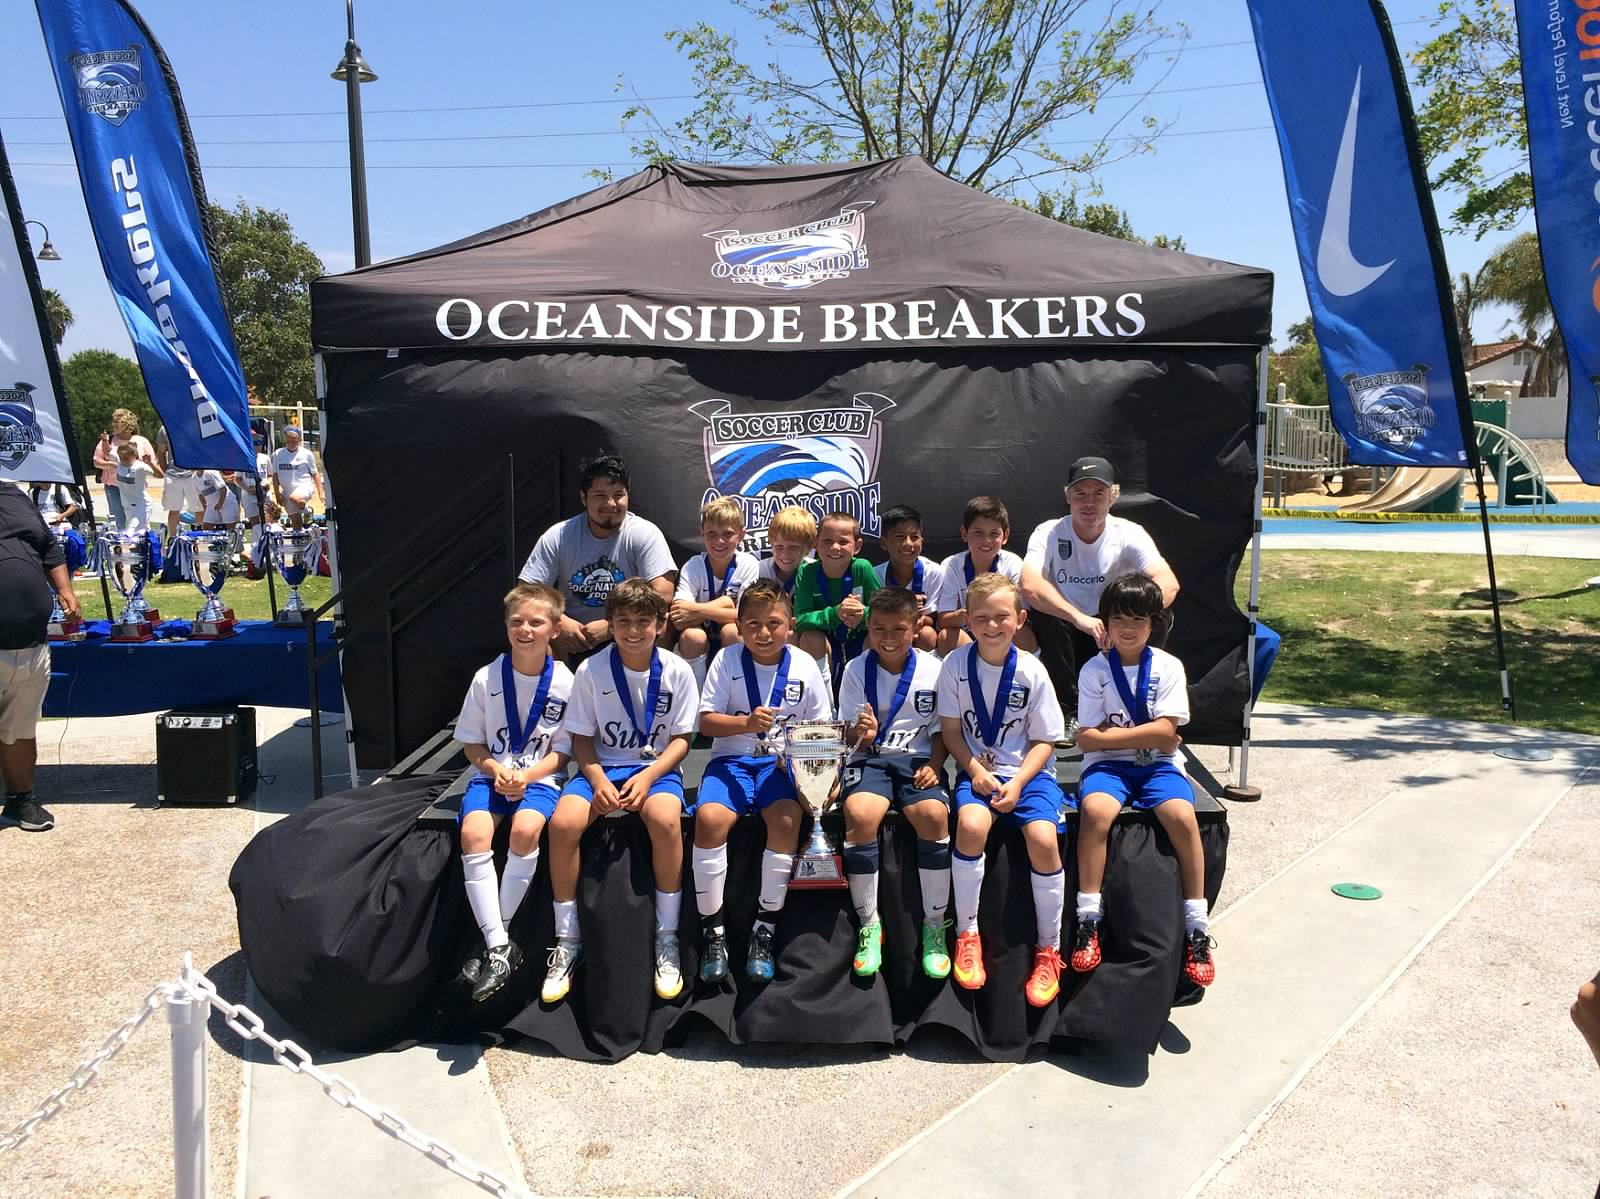 The San Clemente Surf B10 team won the SoCal Cup tournament in Oceanside on Aug. 10. Courtesy photo